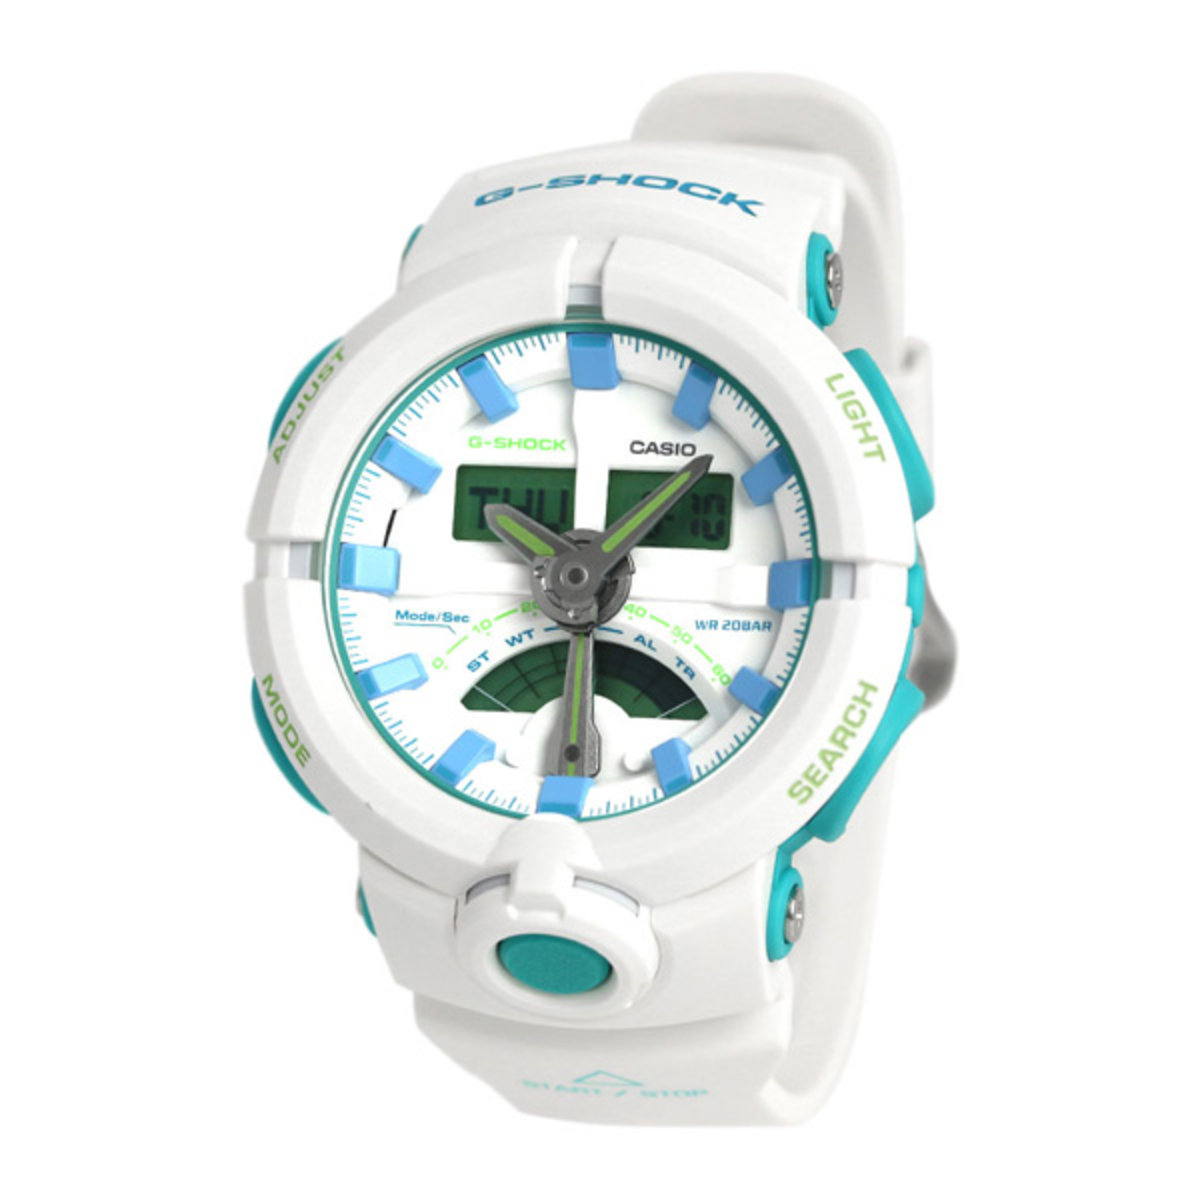 Electronic Watch - GA-500WG-7A (Parallel Import goods)